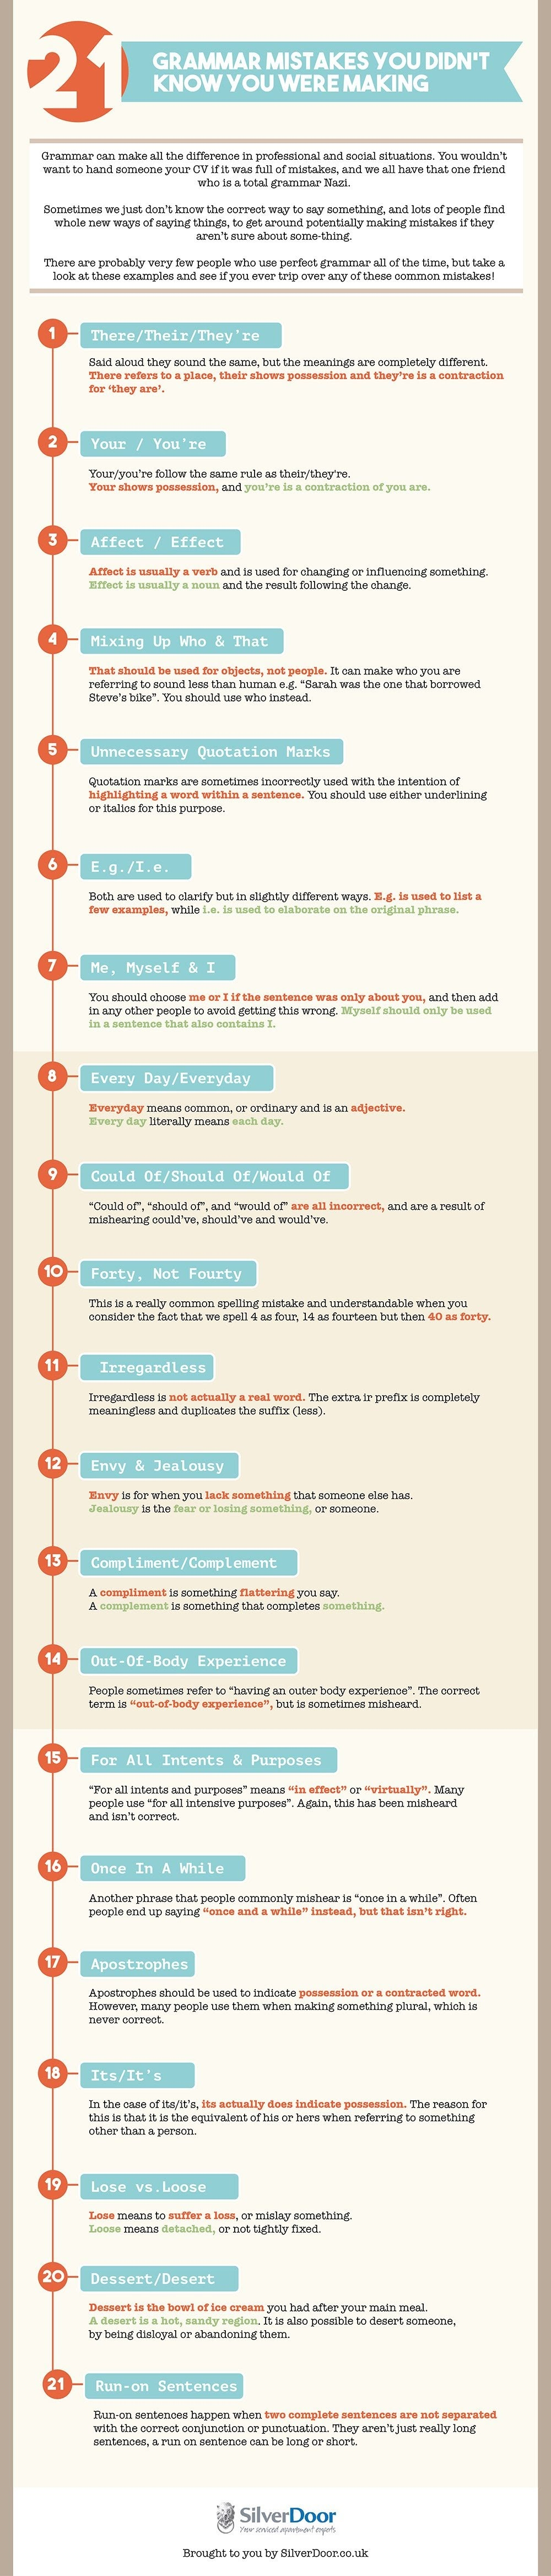 21 Grammar Mistakes You Didn't Know You Were Making - #Infographic